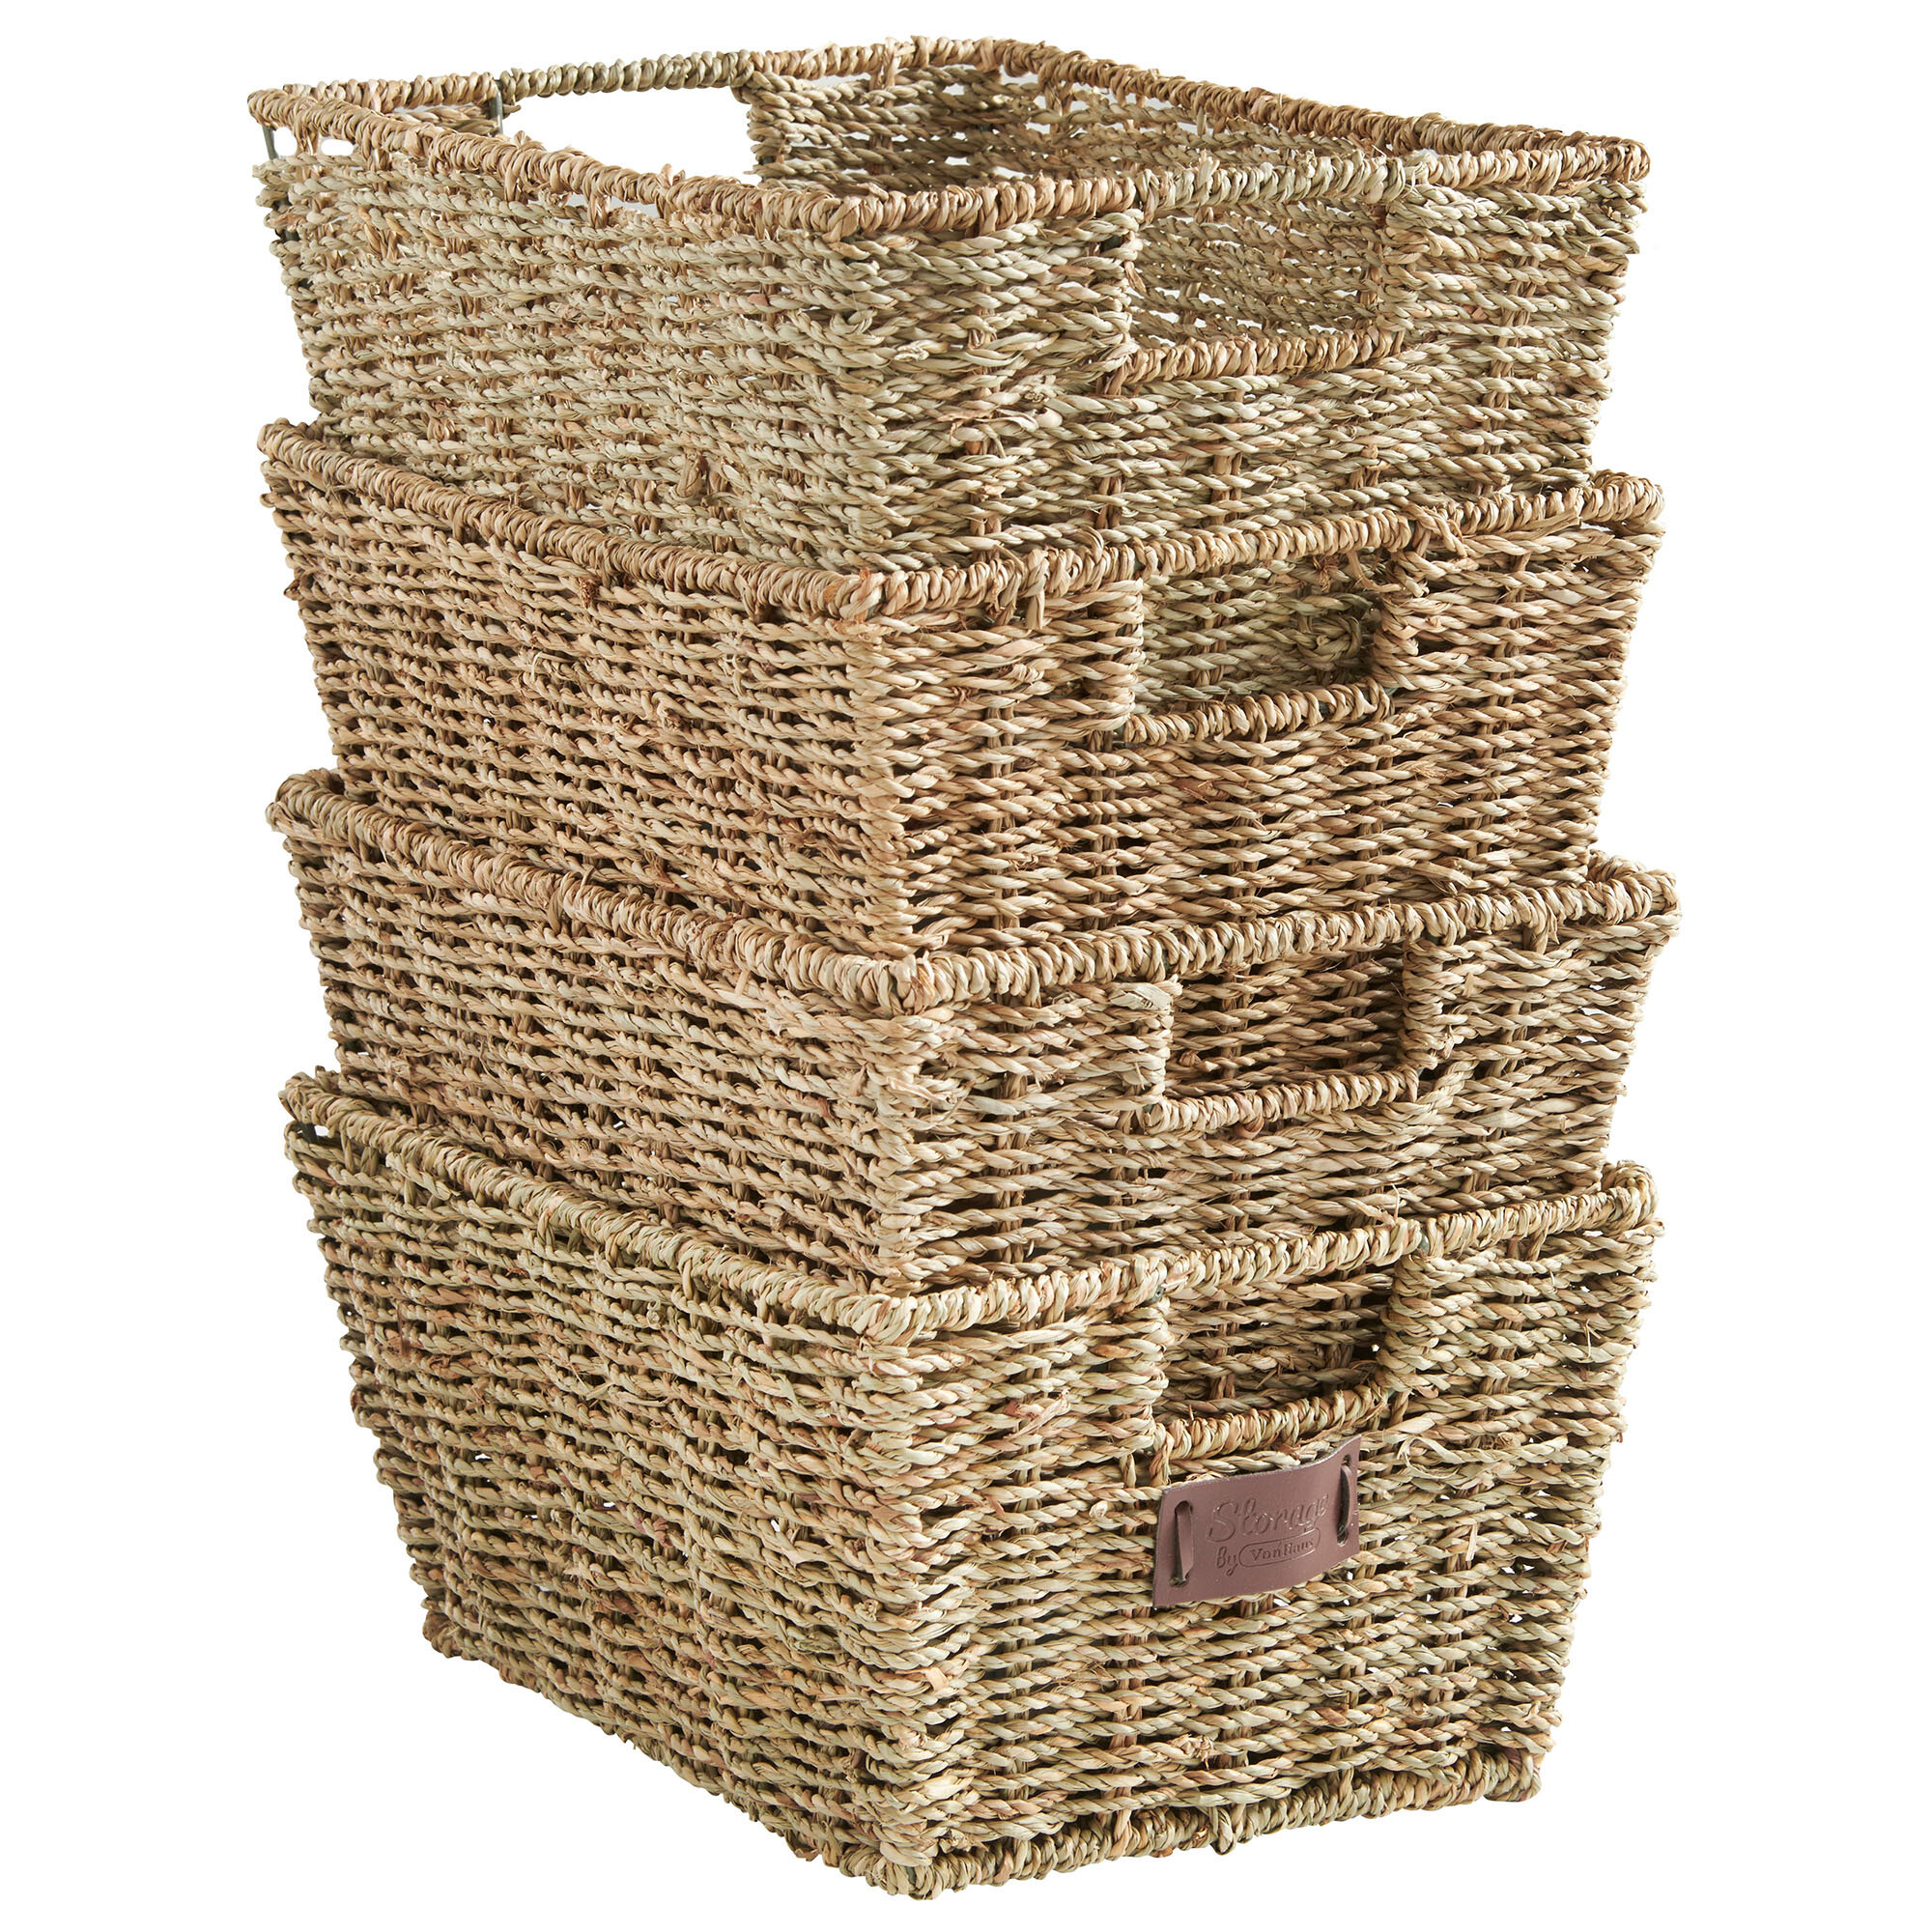 Preferred Seagrass Storage Basket & Reviews | Joss & Main OW56